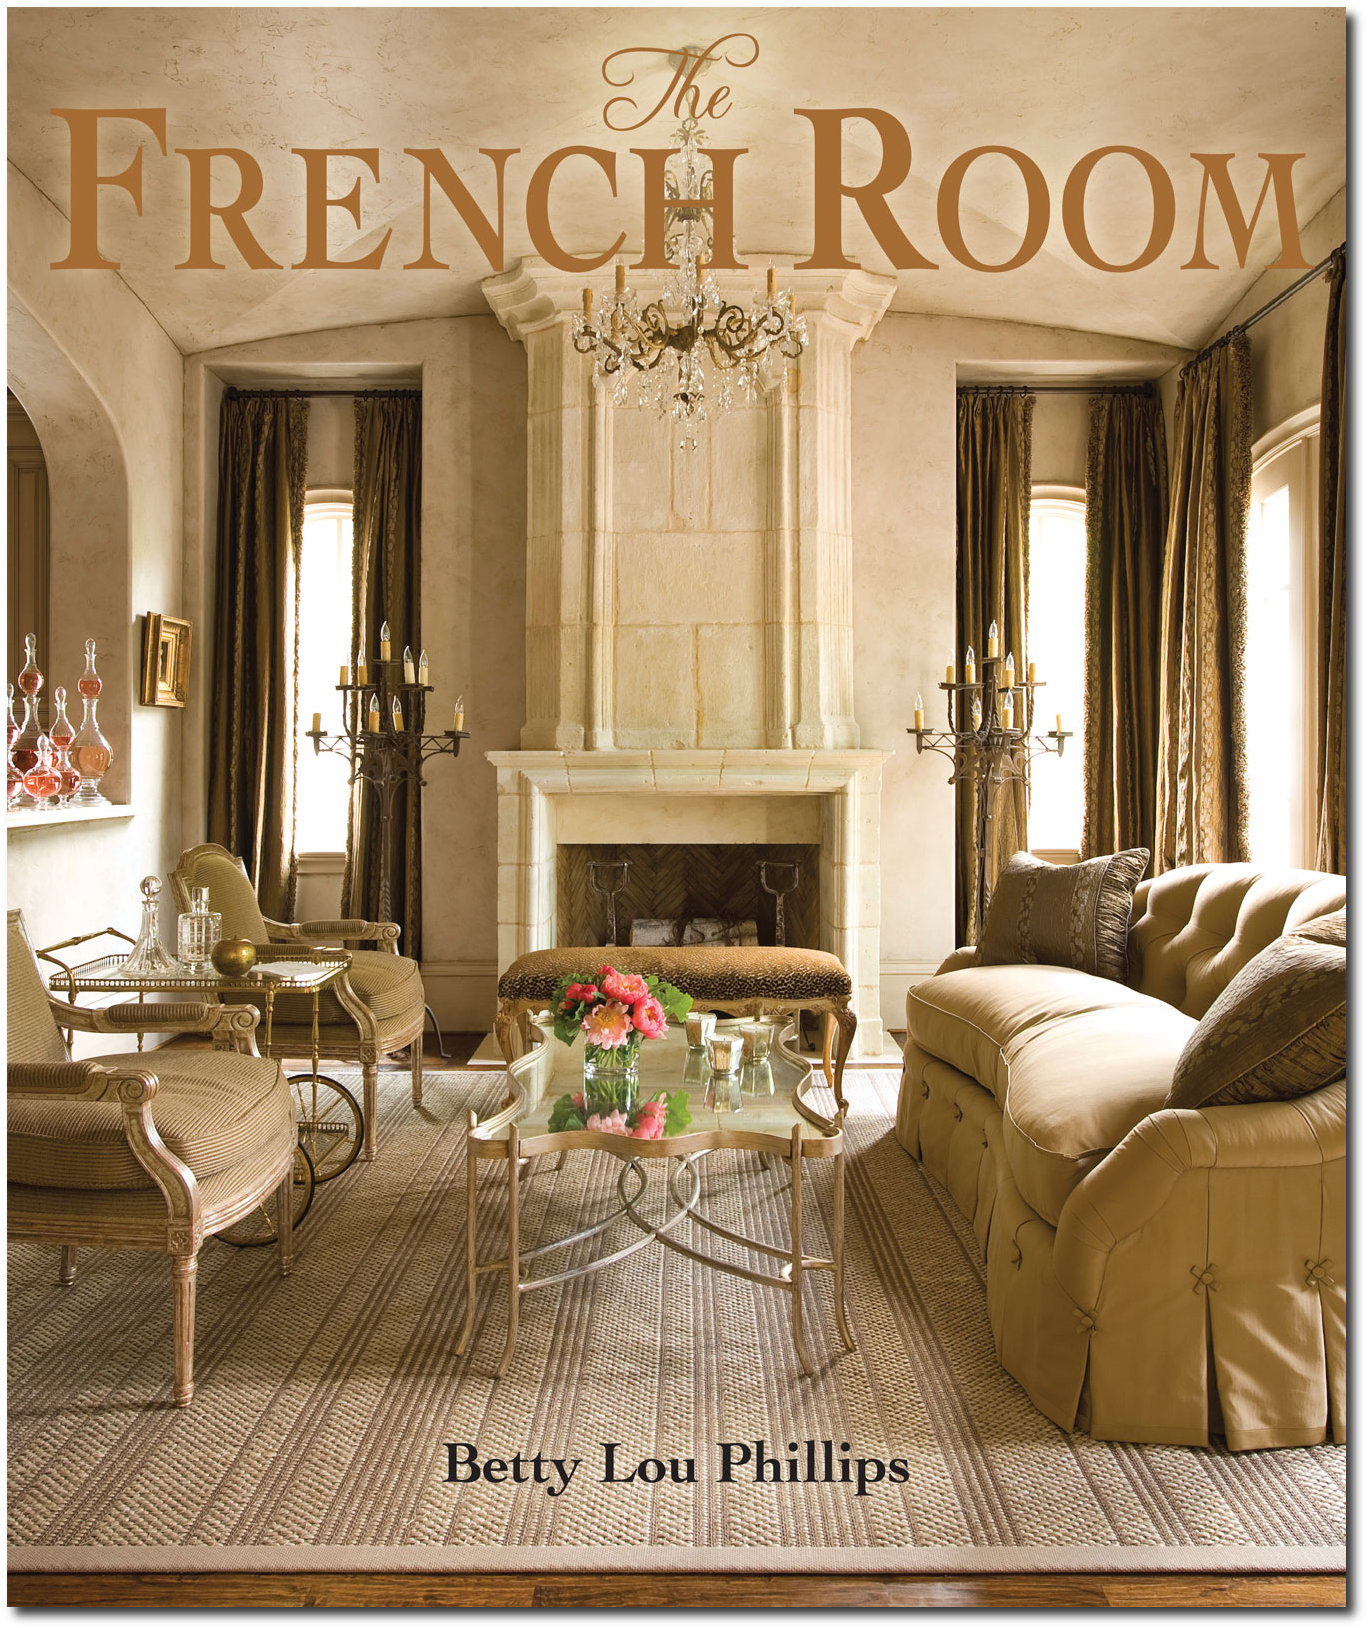 Best French Interior Design Books